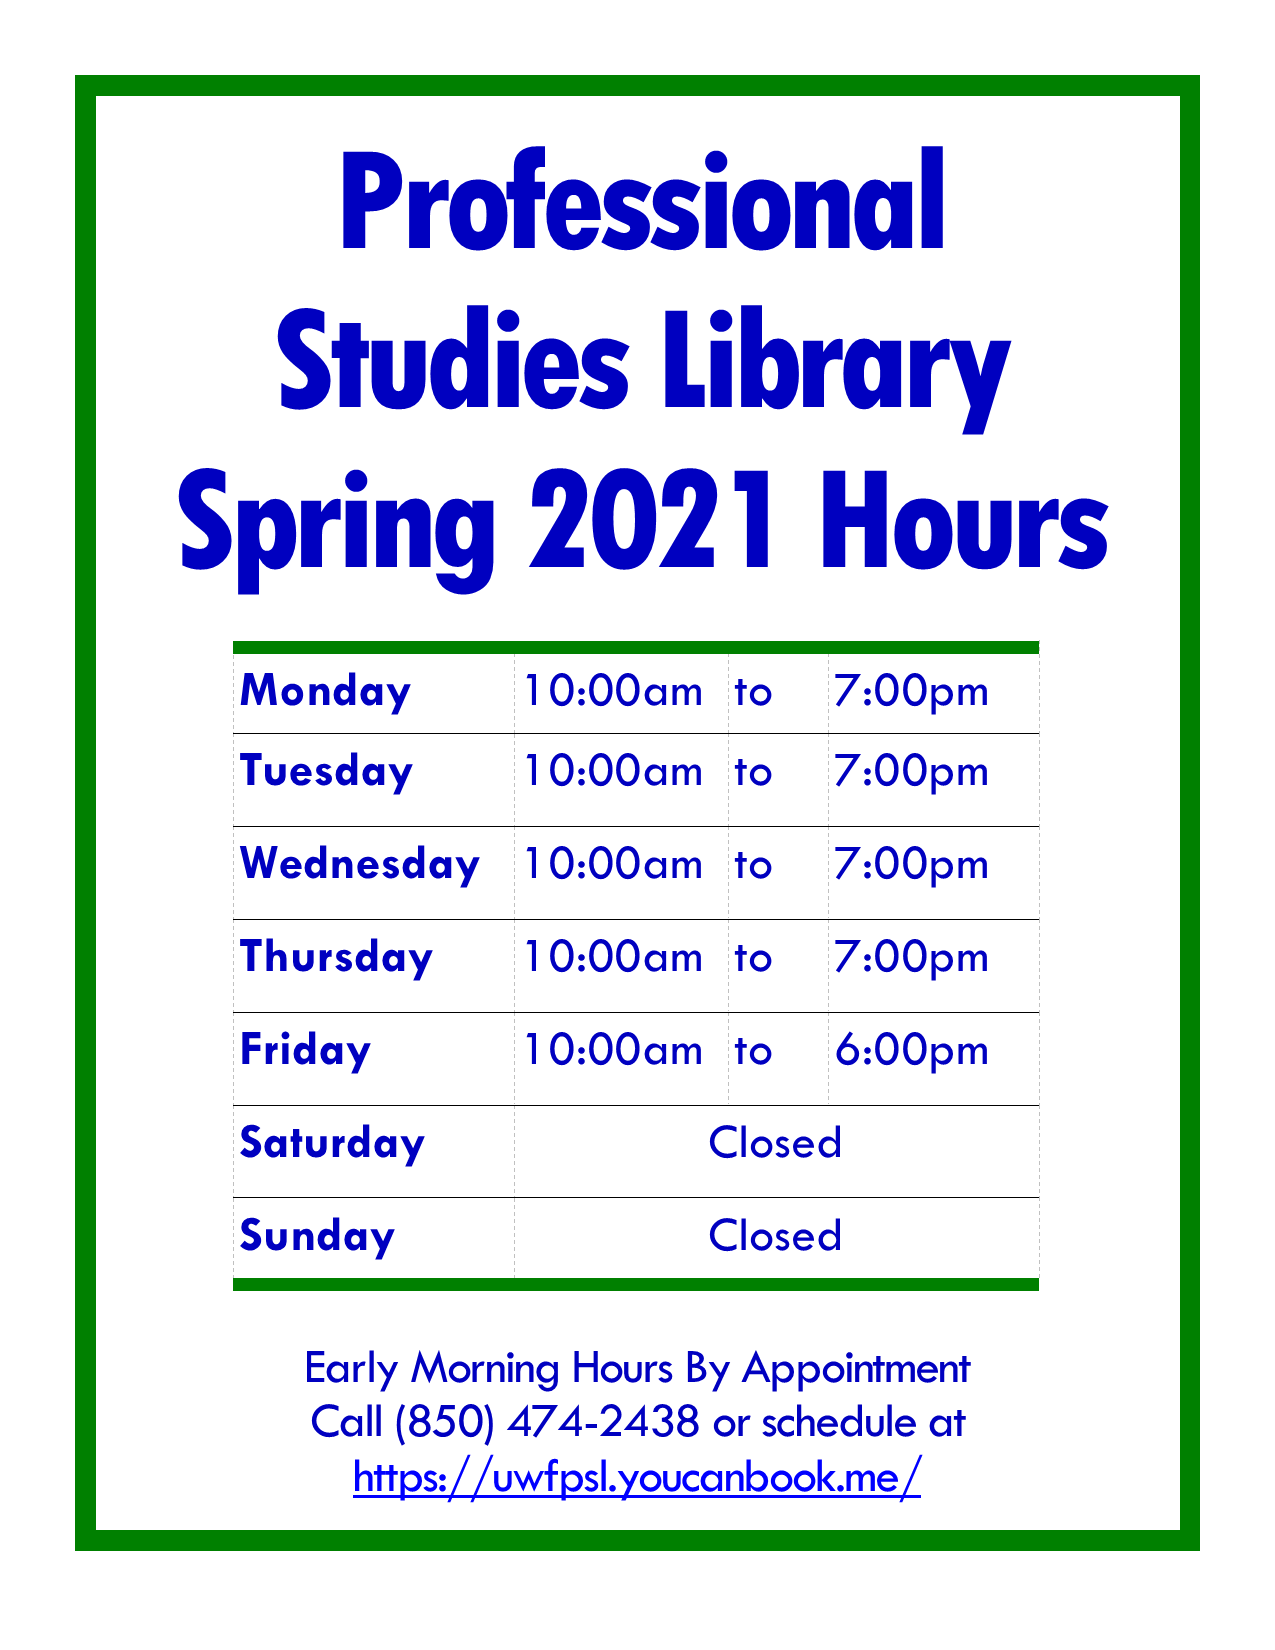 Open 10:00 am - 7:00 pm, Monday-Thursday and Friday, 10:00 am - 6:00 pm.